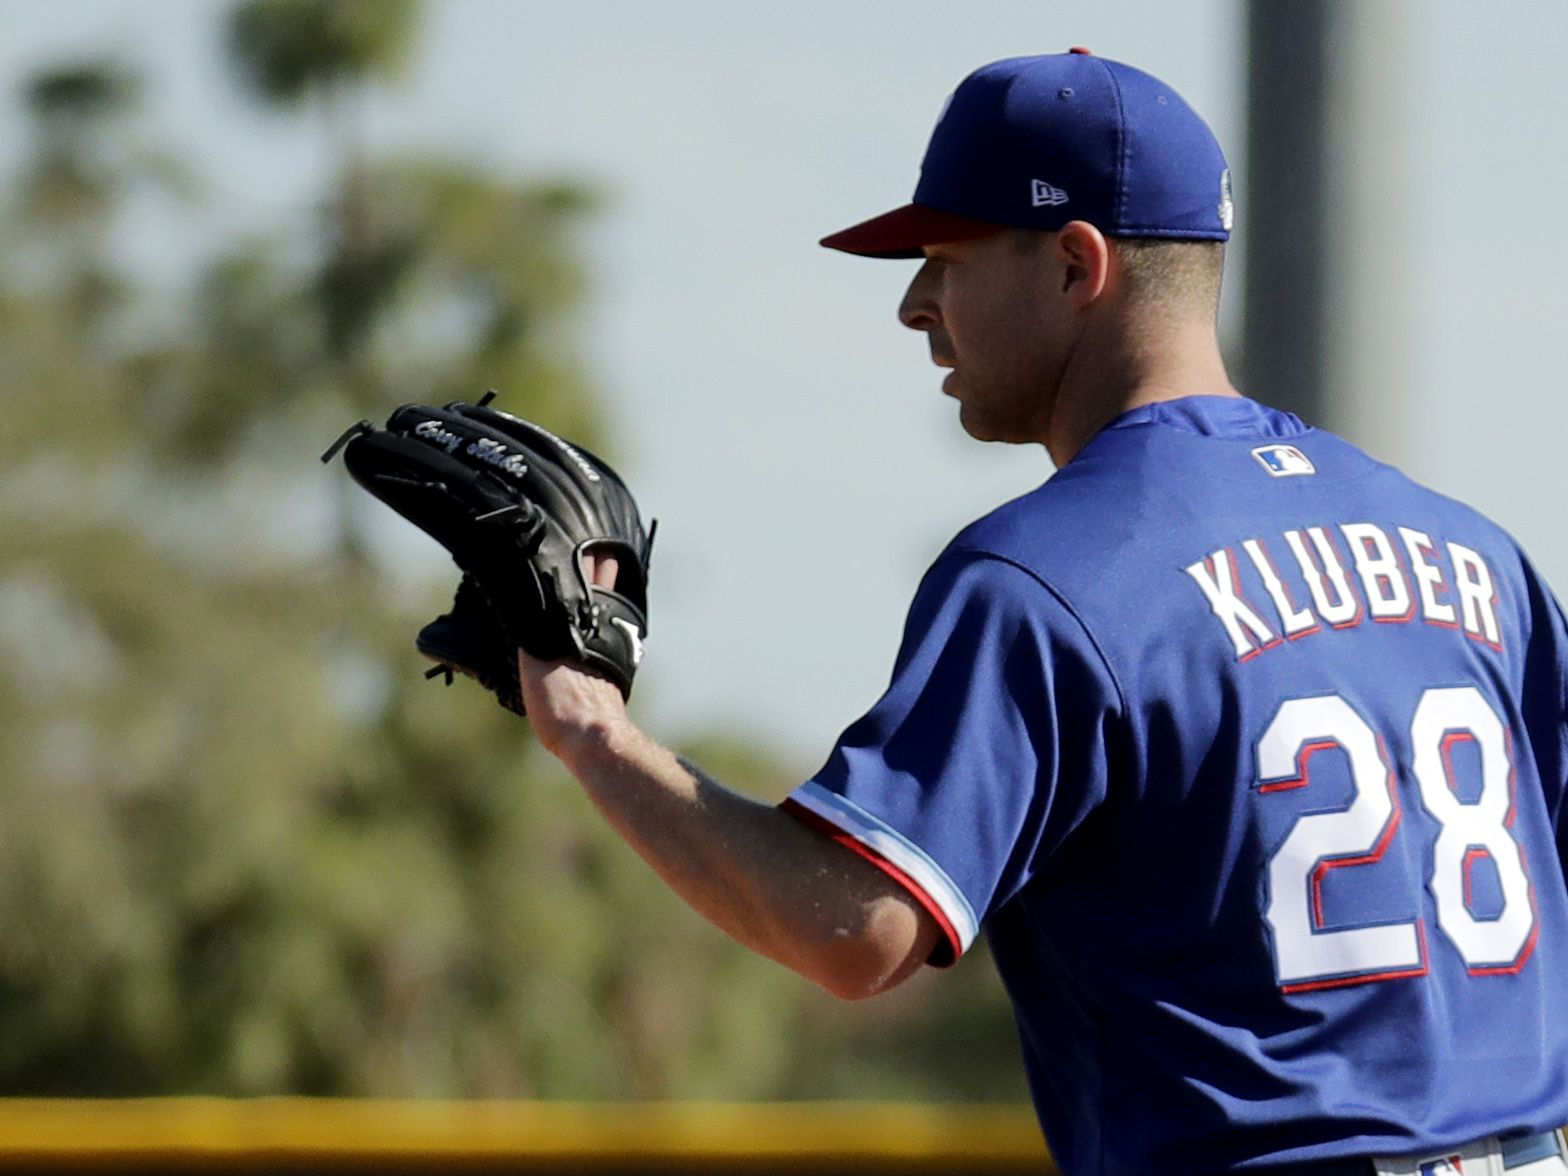 Rangers' Kluber pitches for 1st time since broken arm